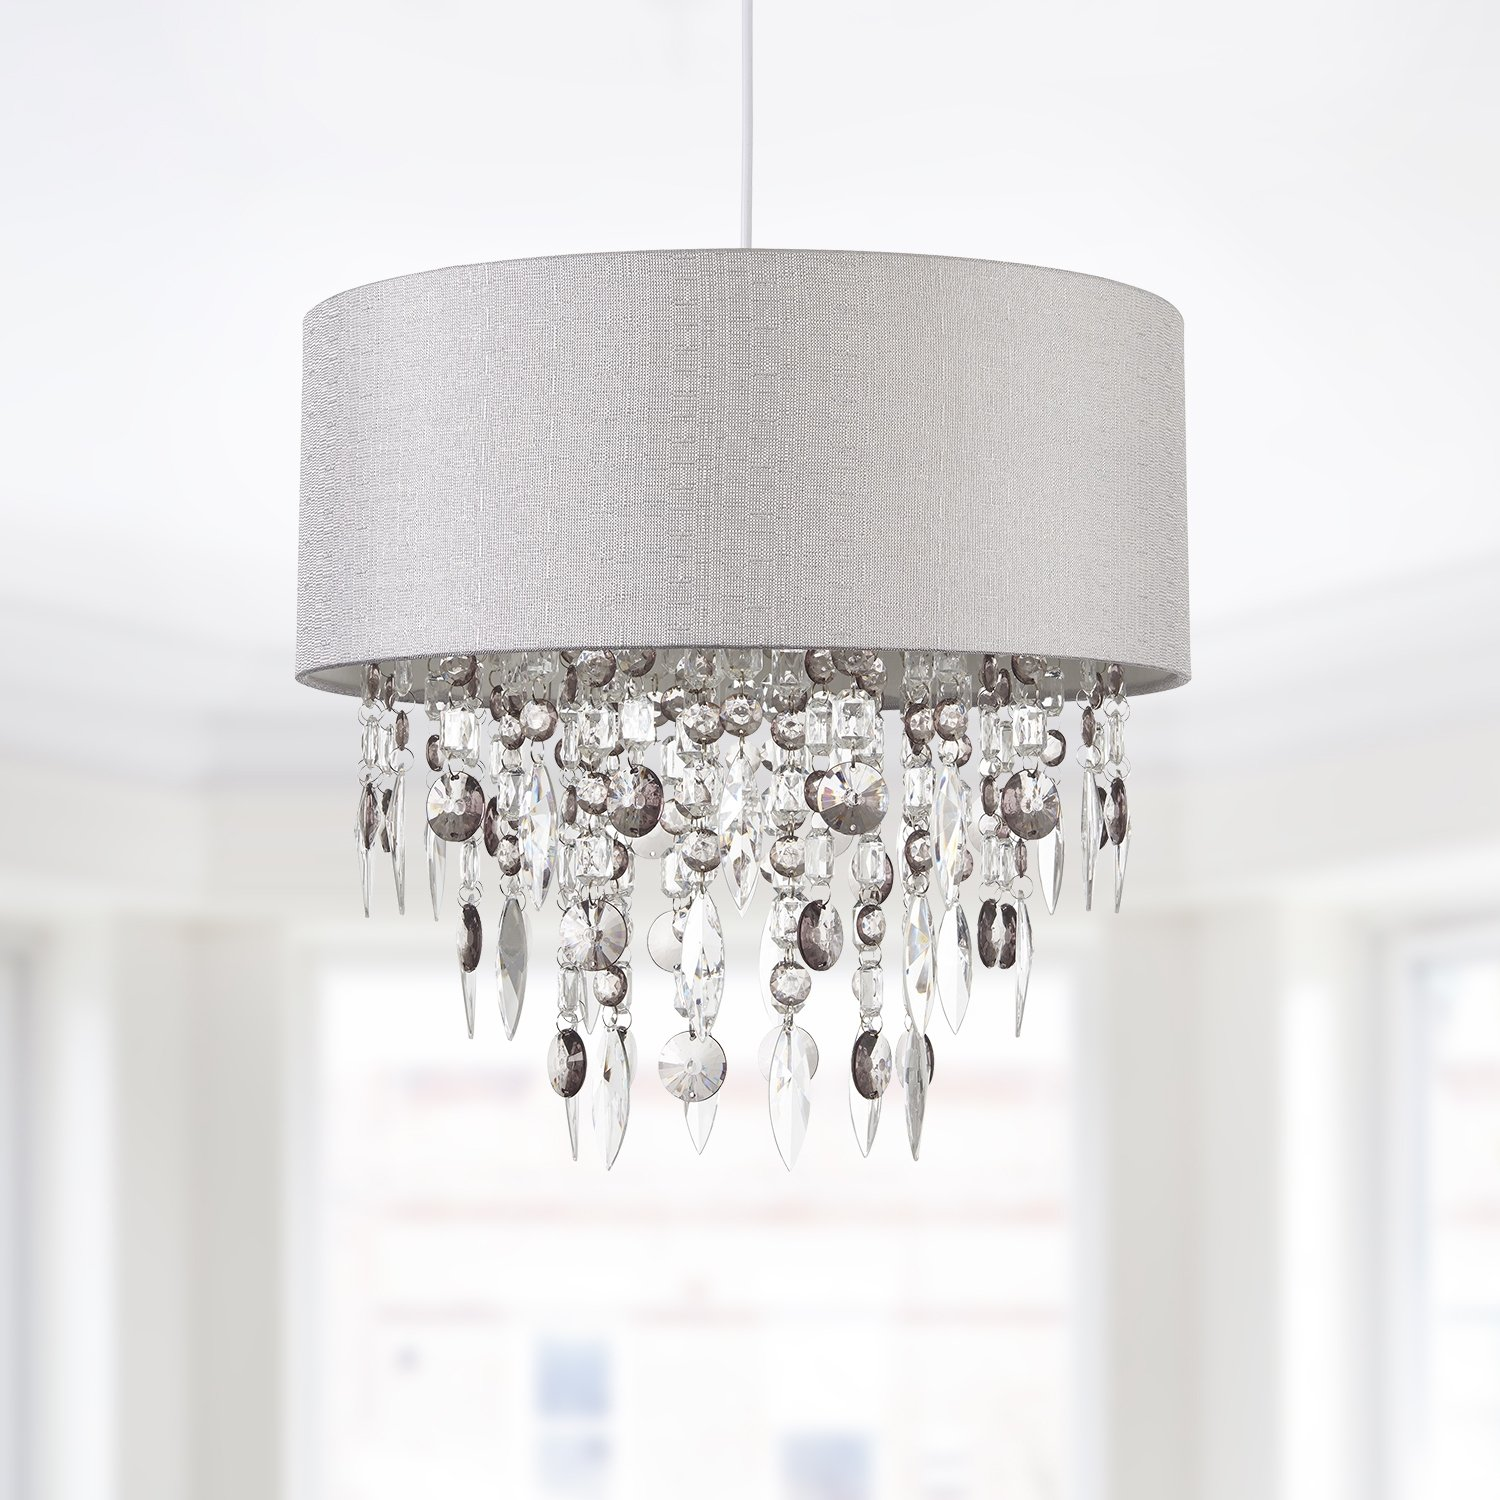 Modern Large 40cm Easy Fit Jewelled Grey Ceiling Light Chandelier Lamp Shade Ebay